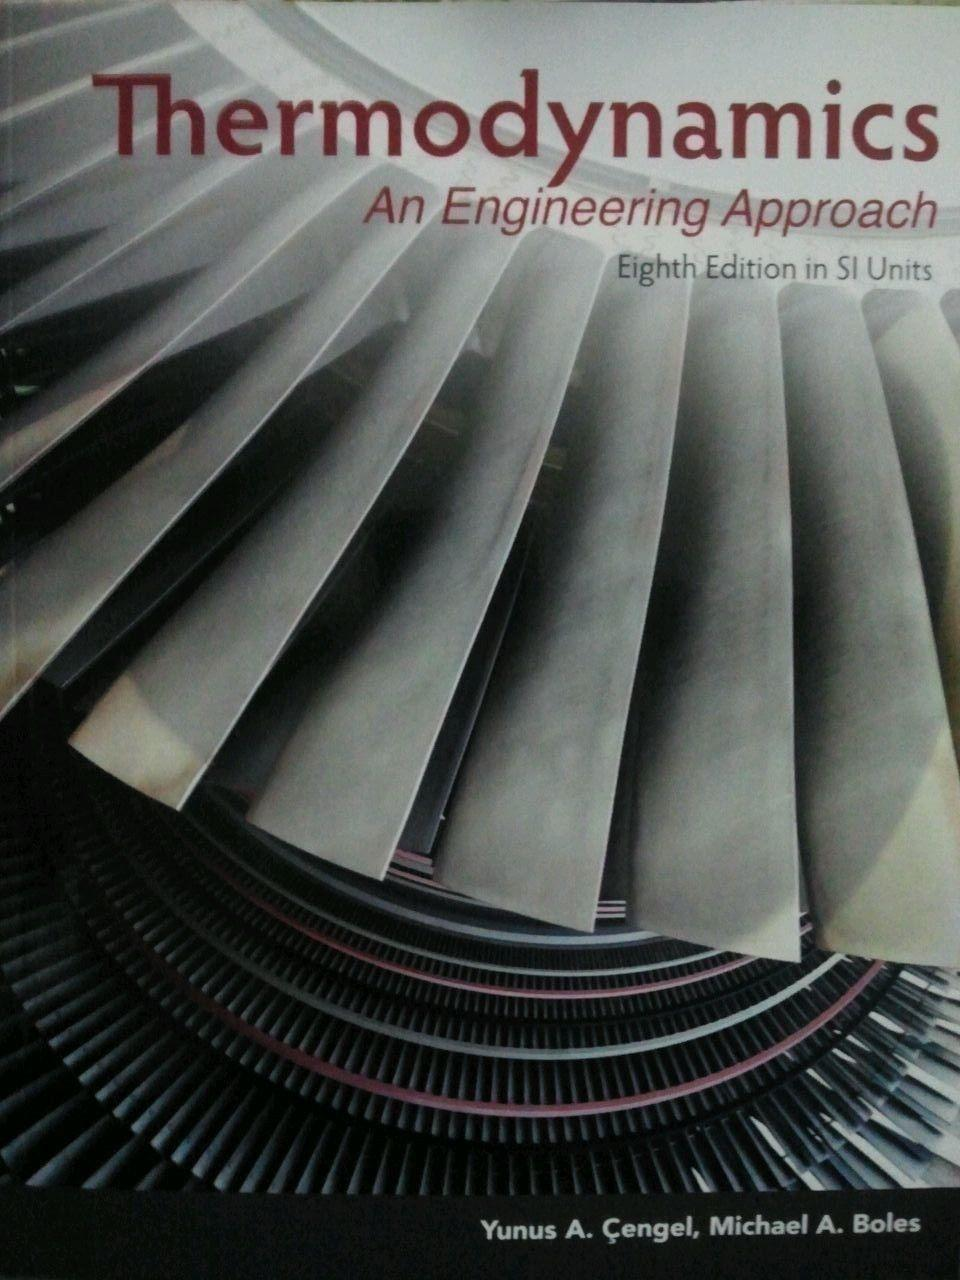 thermodynamics an engineering approach th international edition thermodynamics an engineering approach 8th international edition brand new paperback cengel